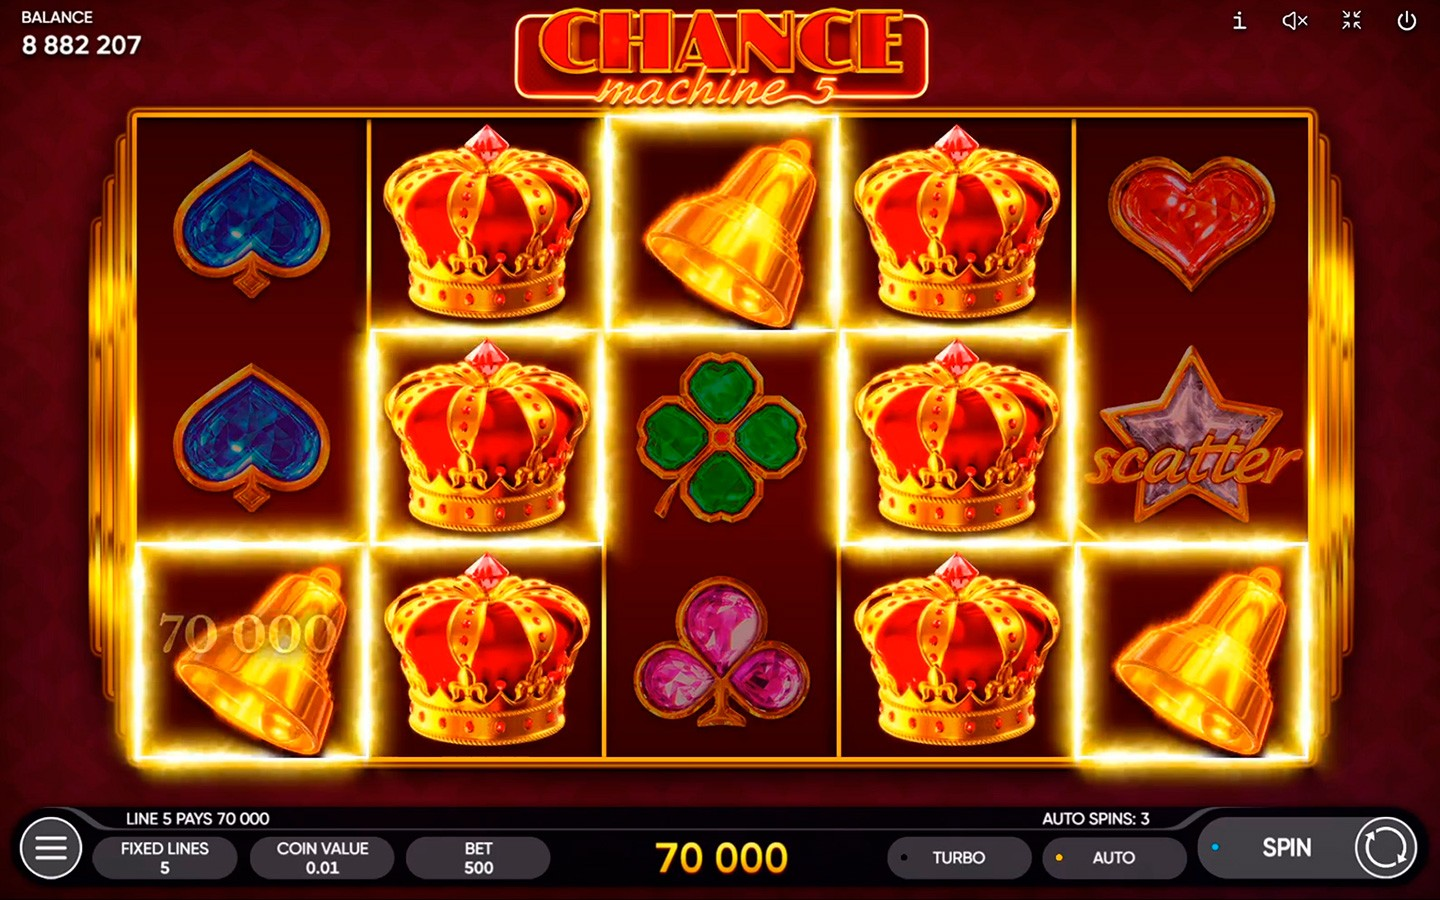 BEST CASINO DEVELOPER | Chance Machine 5 slot is out!